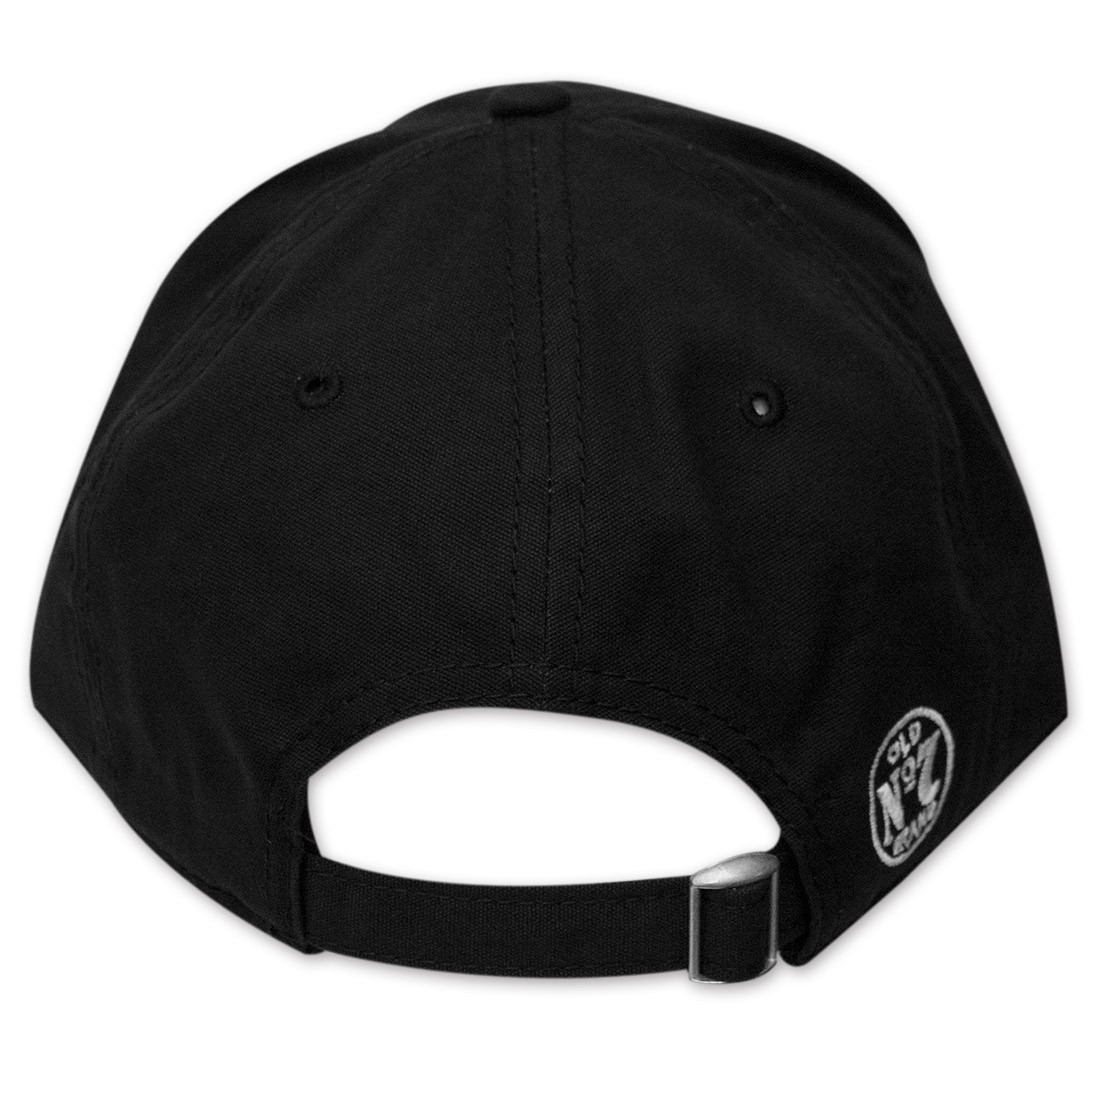 Jack Daniel's Old No. 7 Vertical Logo Hat